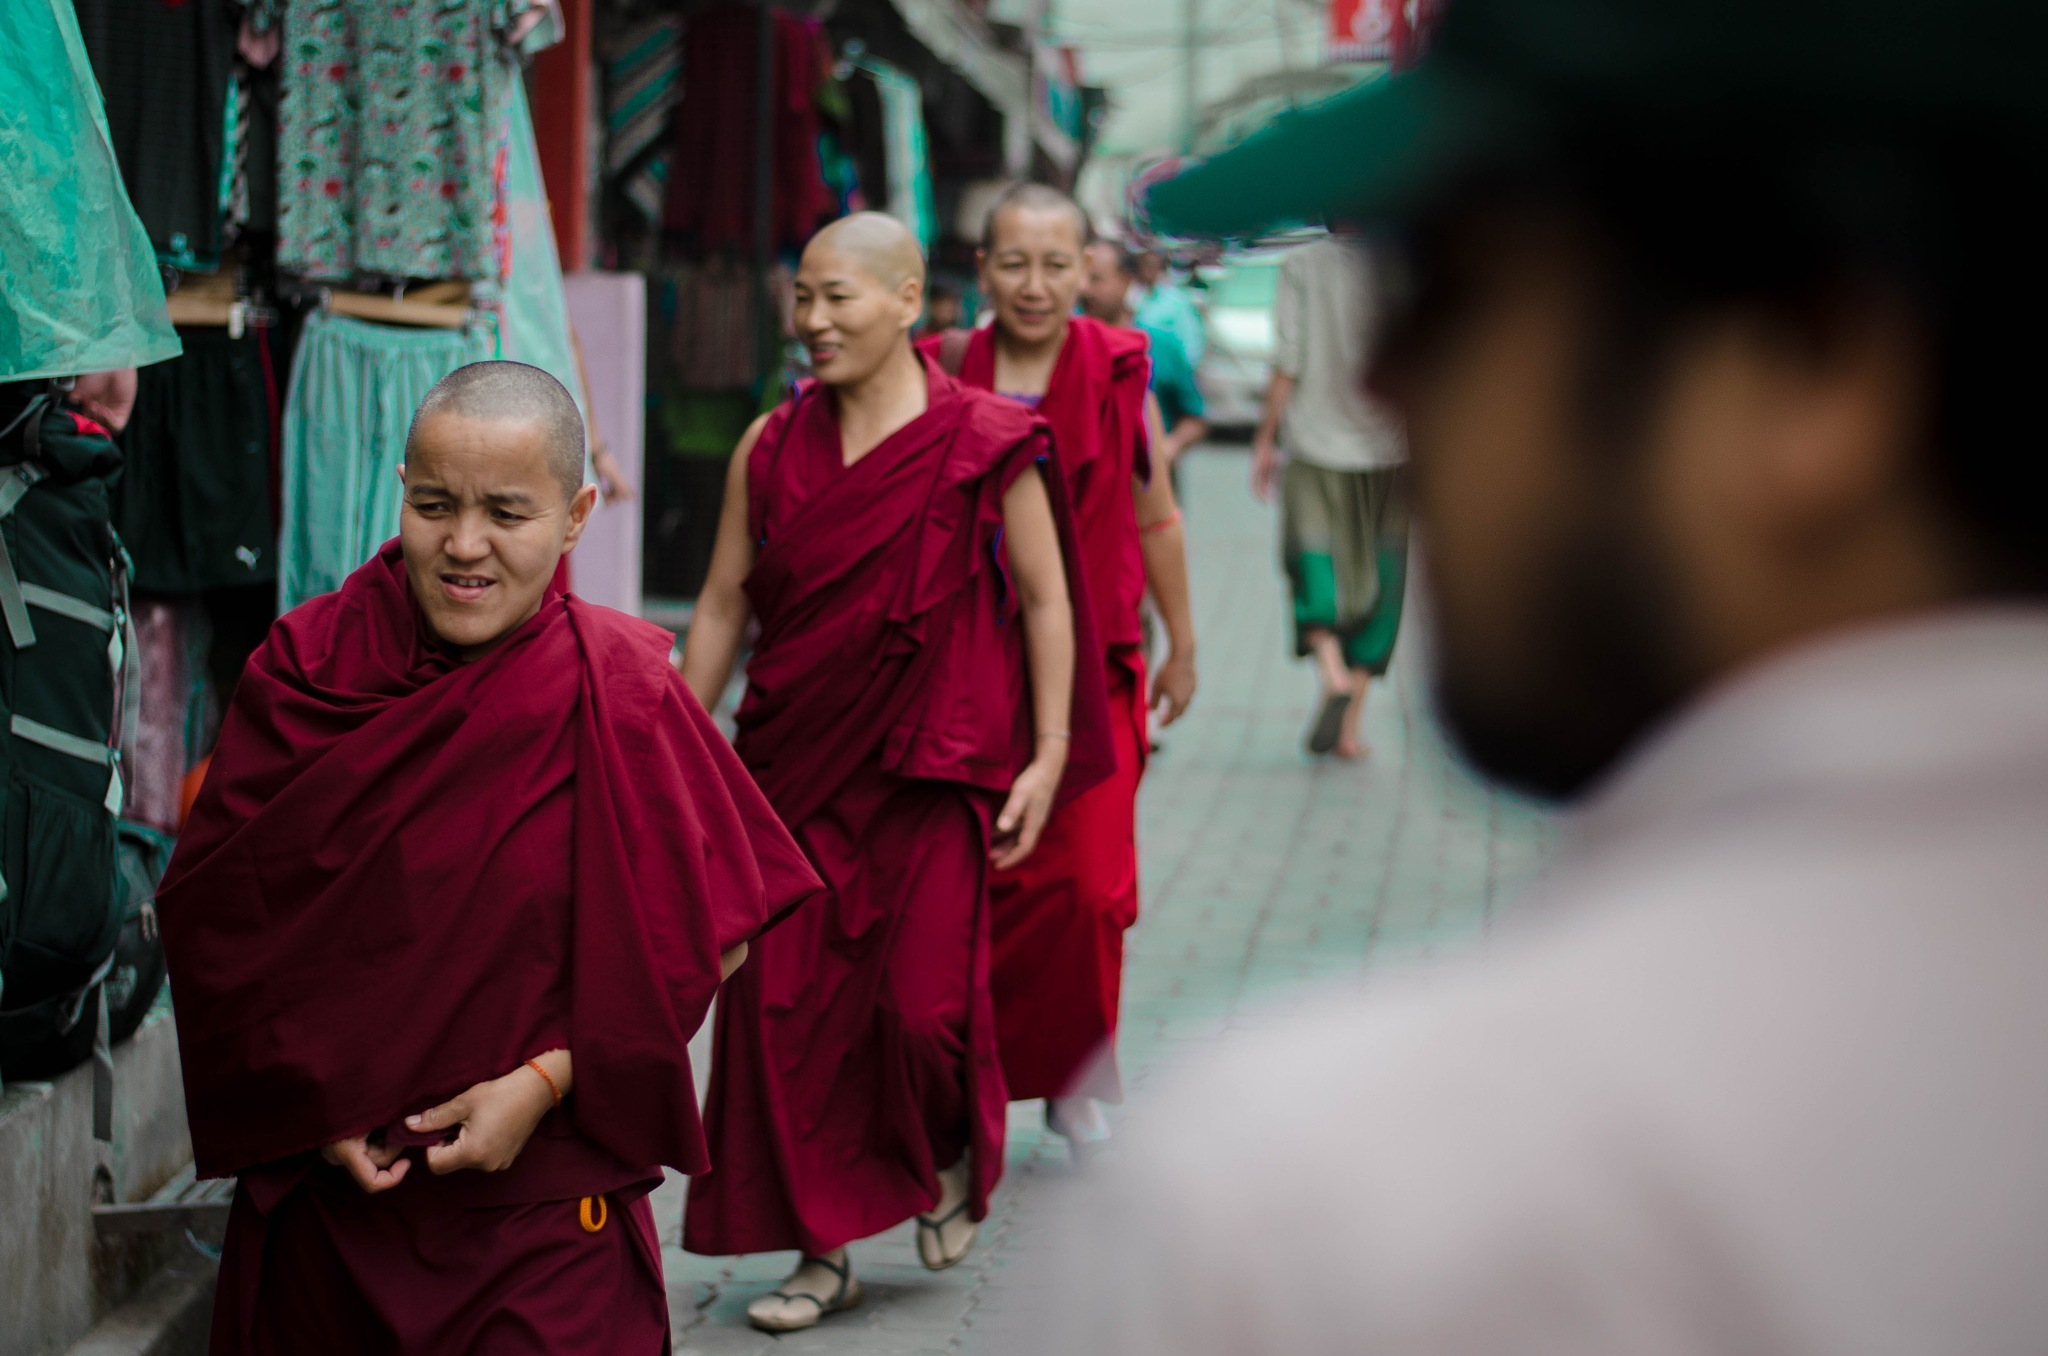 Monks on the streets by Prateek Khatri